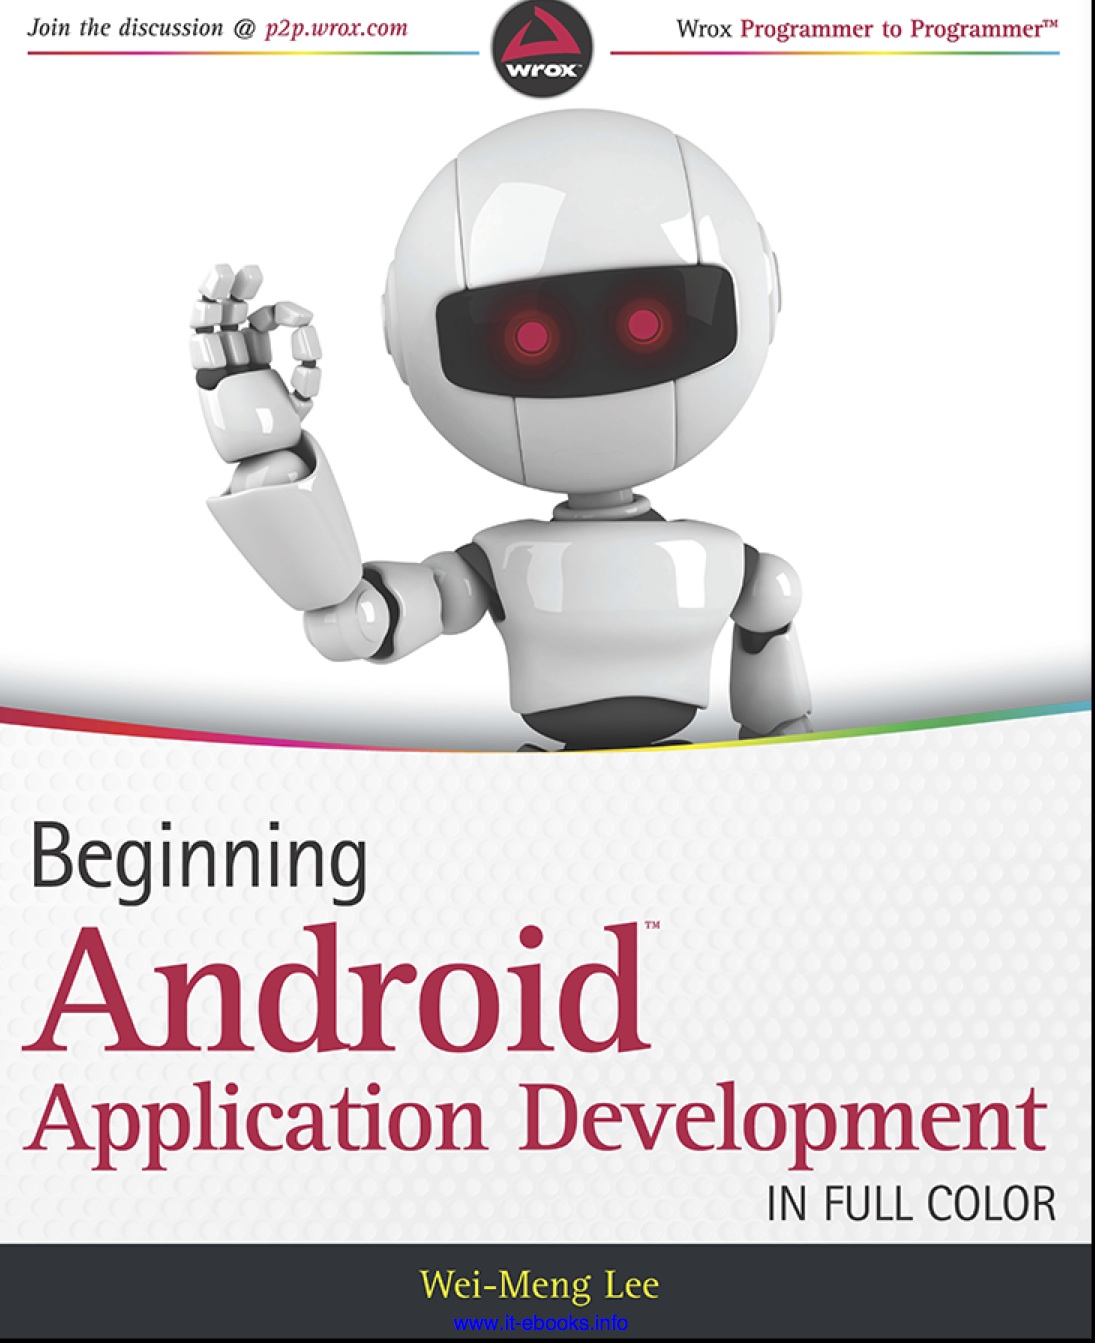 Begining Android Applications